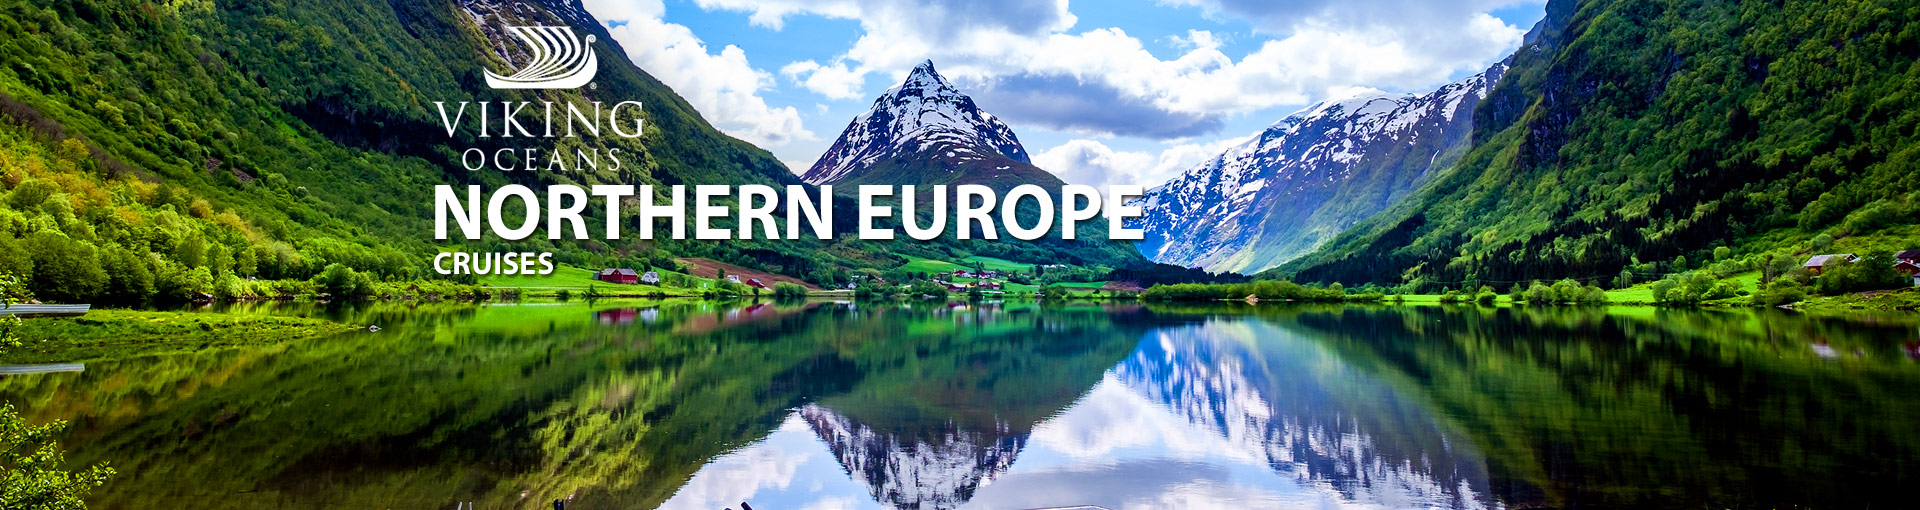 Viking Oceans Northern Europe Cruises